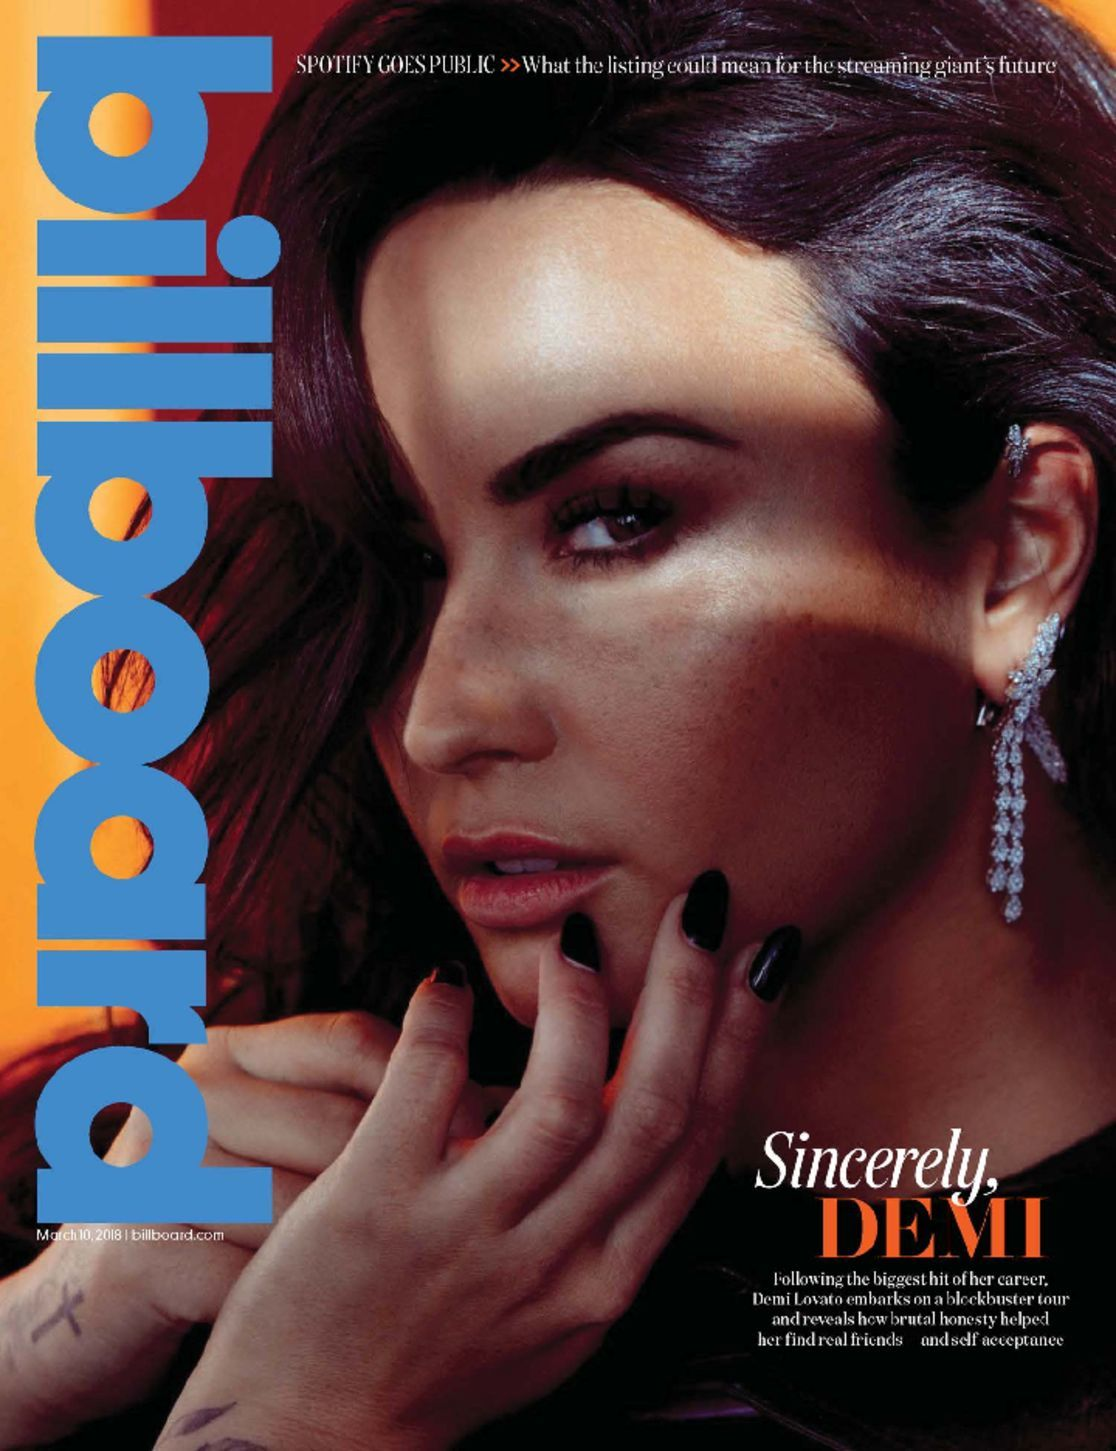 Yes, you can renew your subscription to Billboard magazine online at alinapant.ml Click on Renew Subscription option at right hand side top of the website, select your magazine and terms you want to subscribe to, place the order and it will be automatically added to your existing subscription.